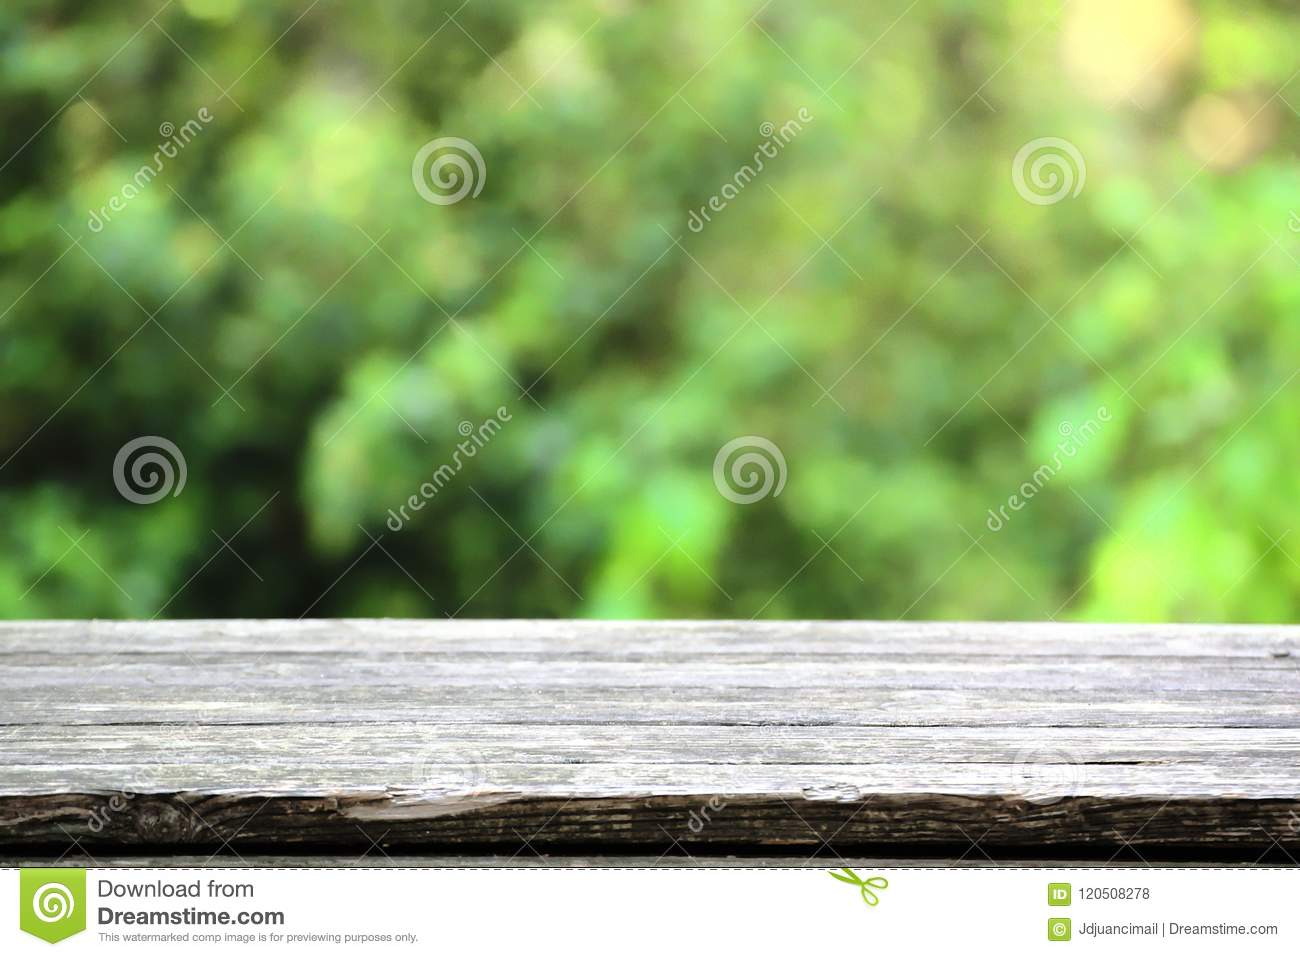 Natural wooden table in a rustic environment against a blured green background. Empty copy space